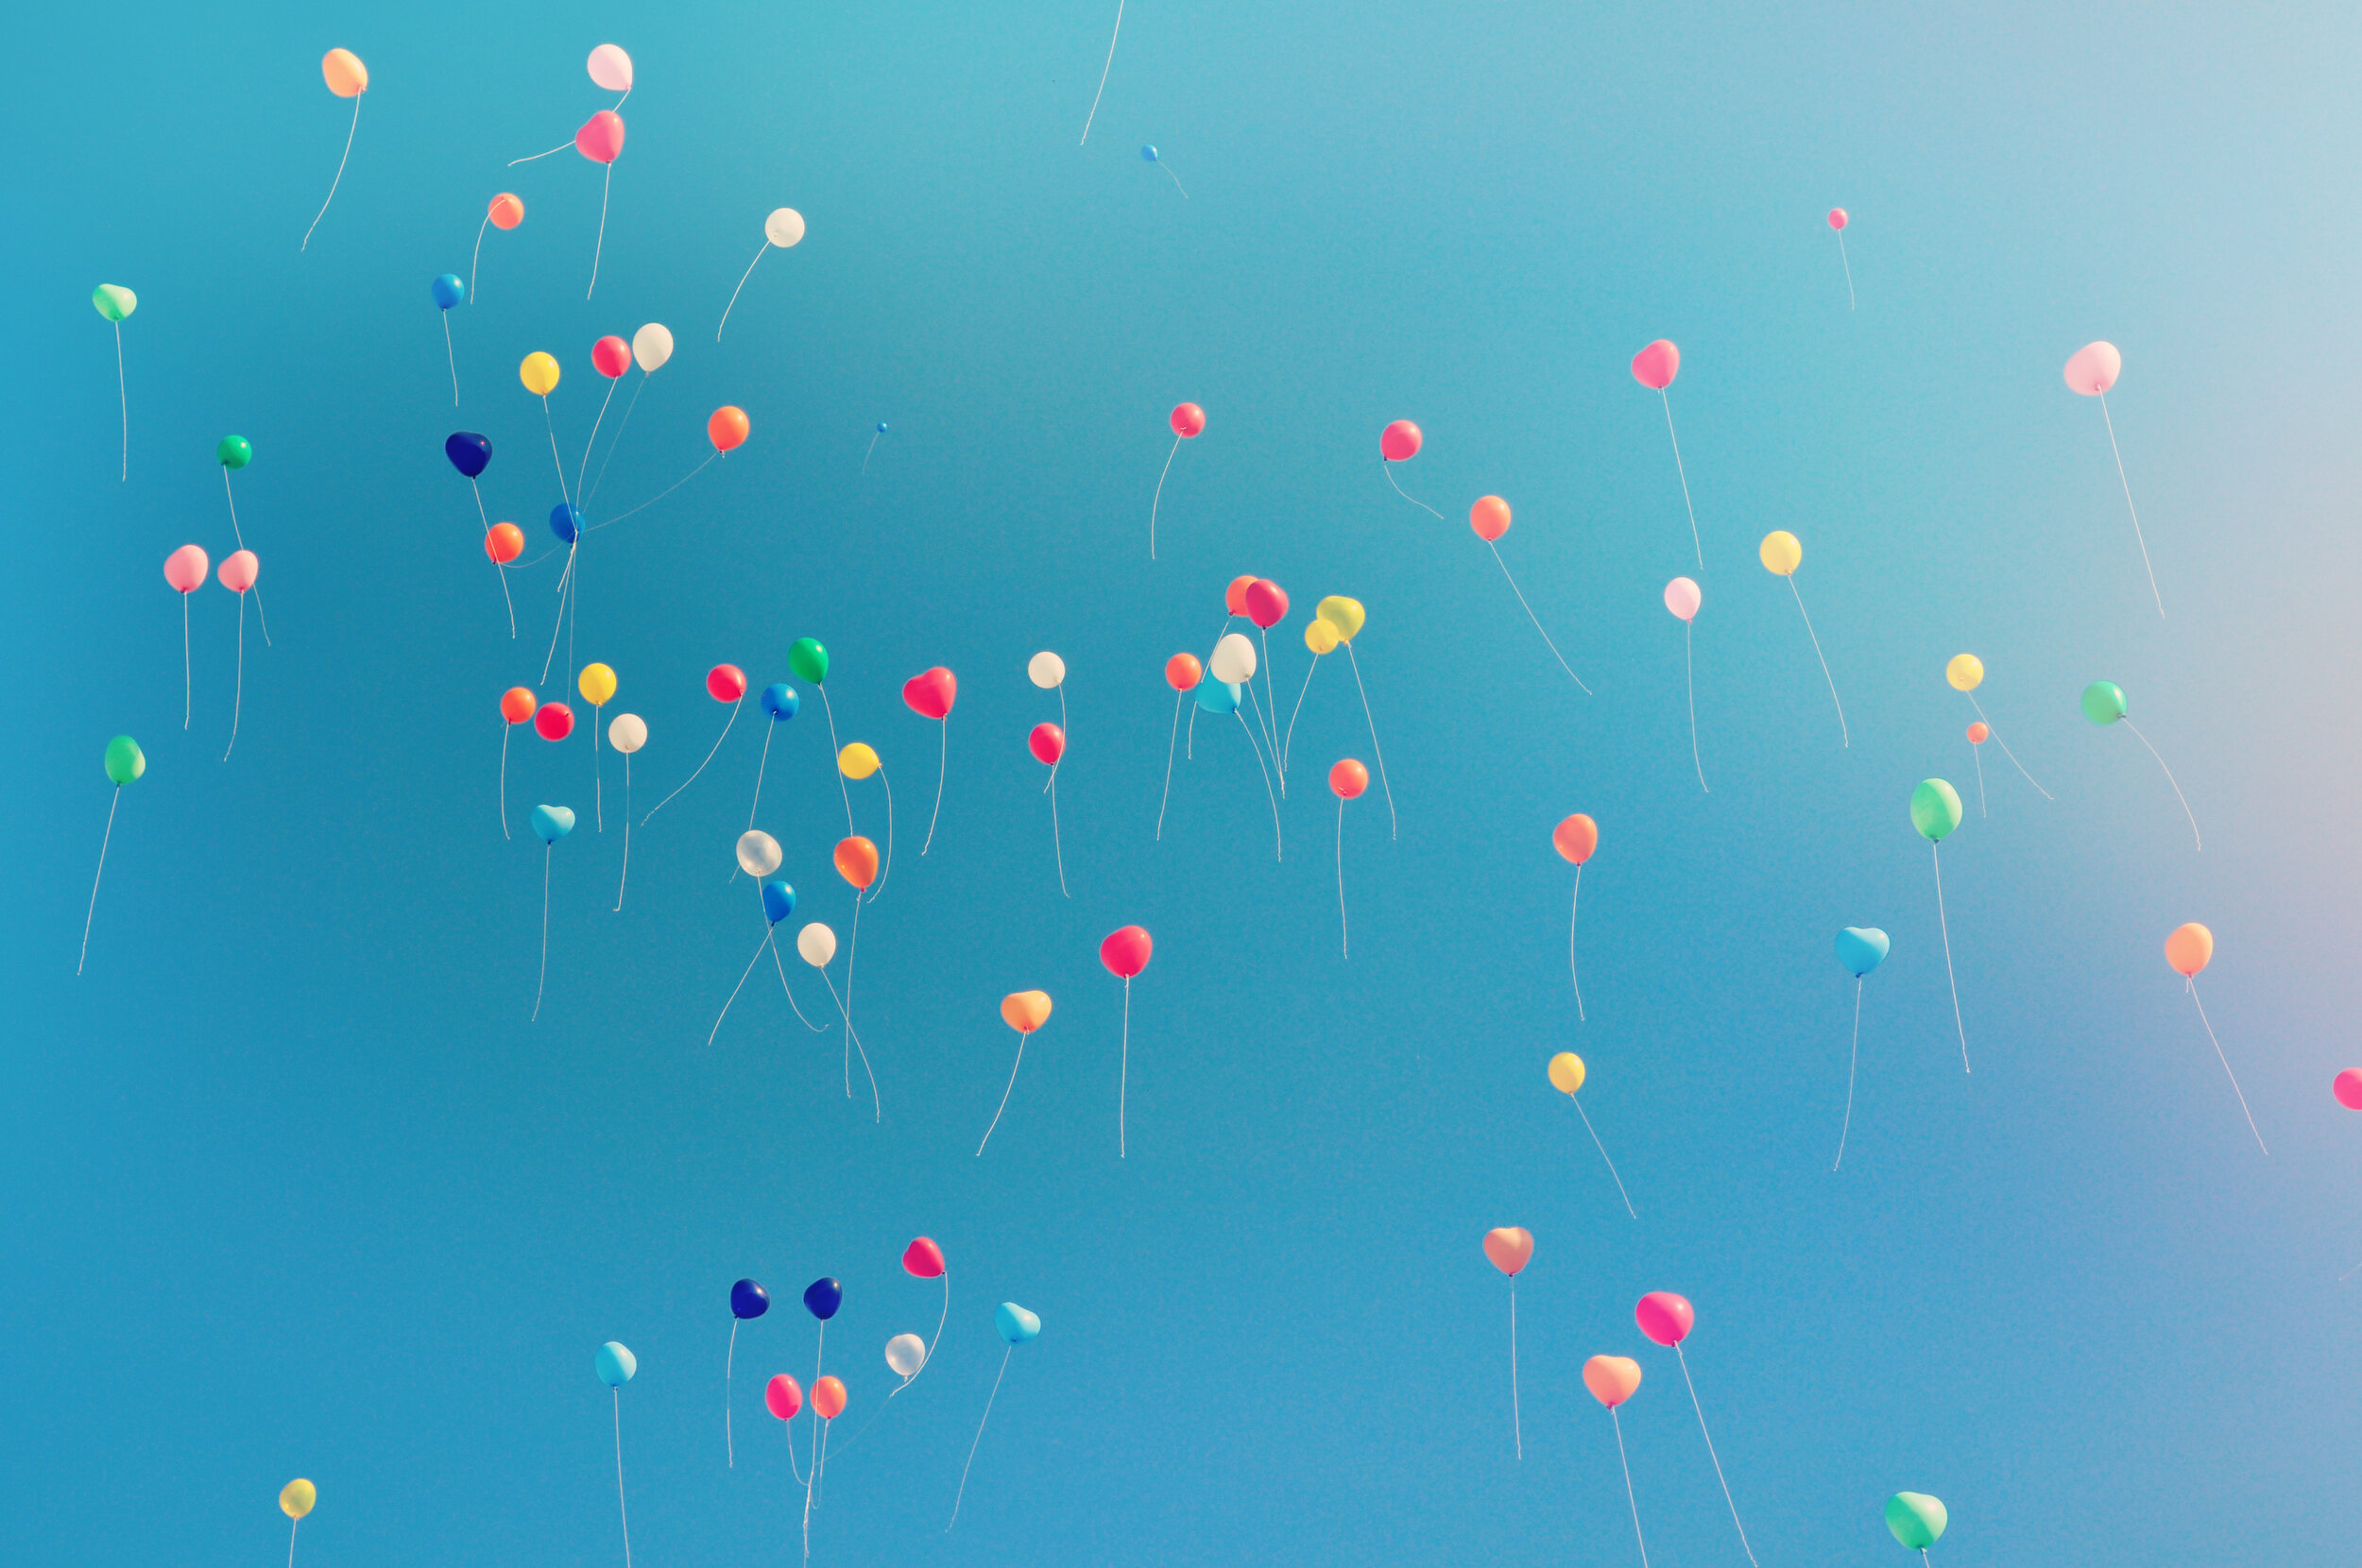 colorful balloons floating against a blue sky